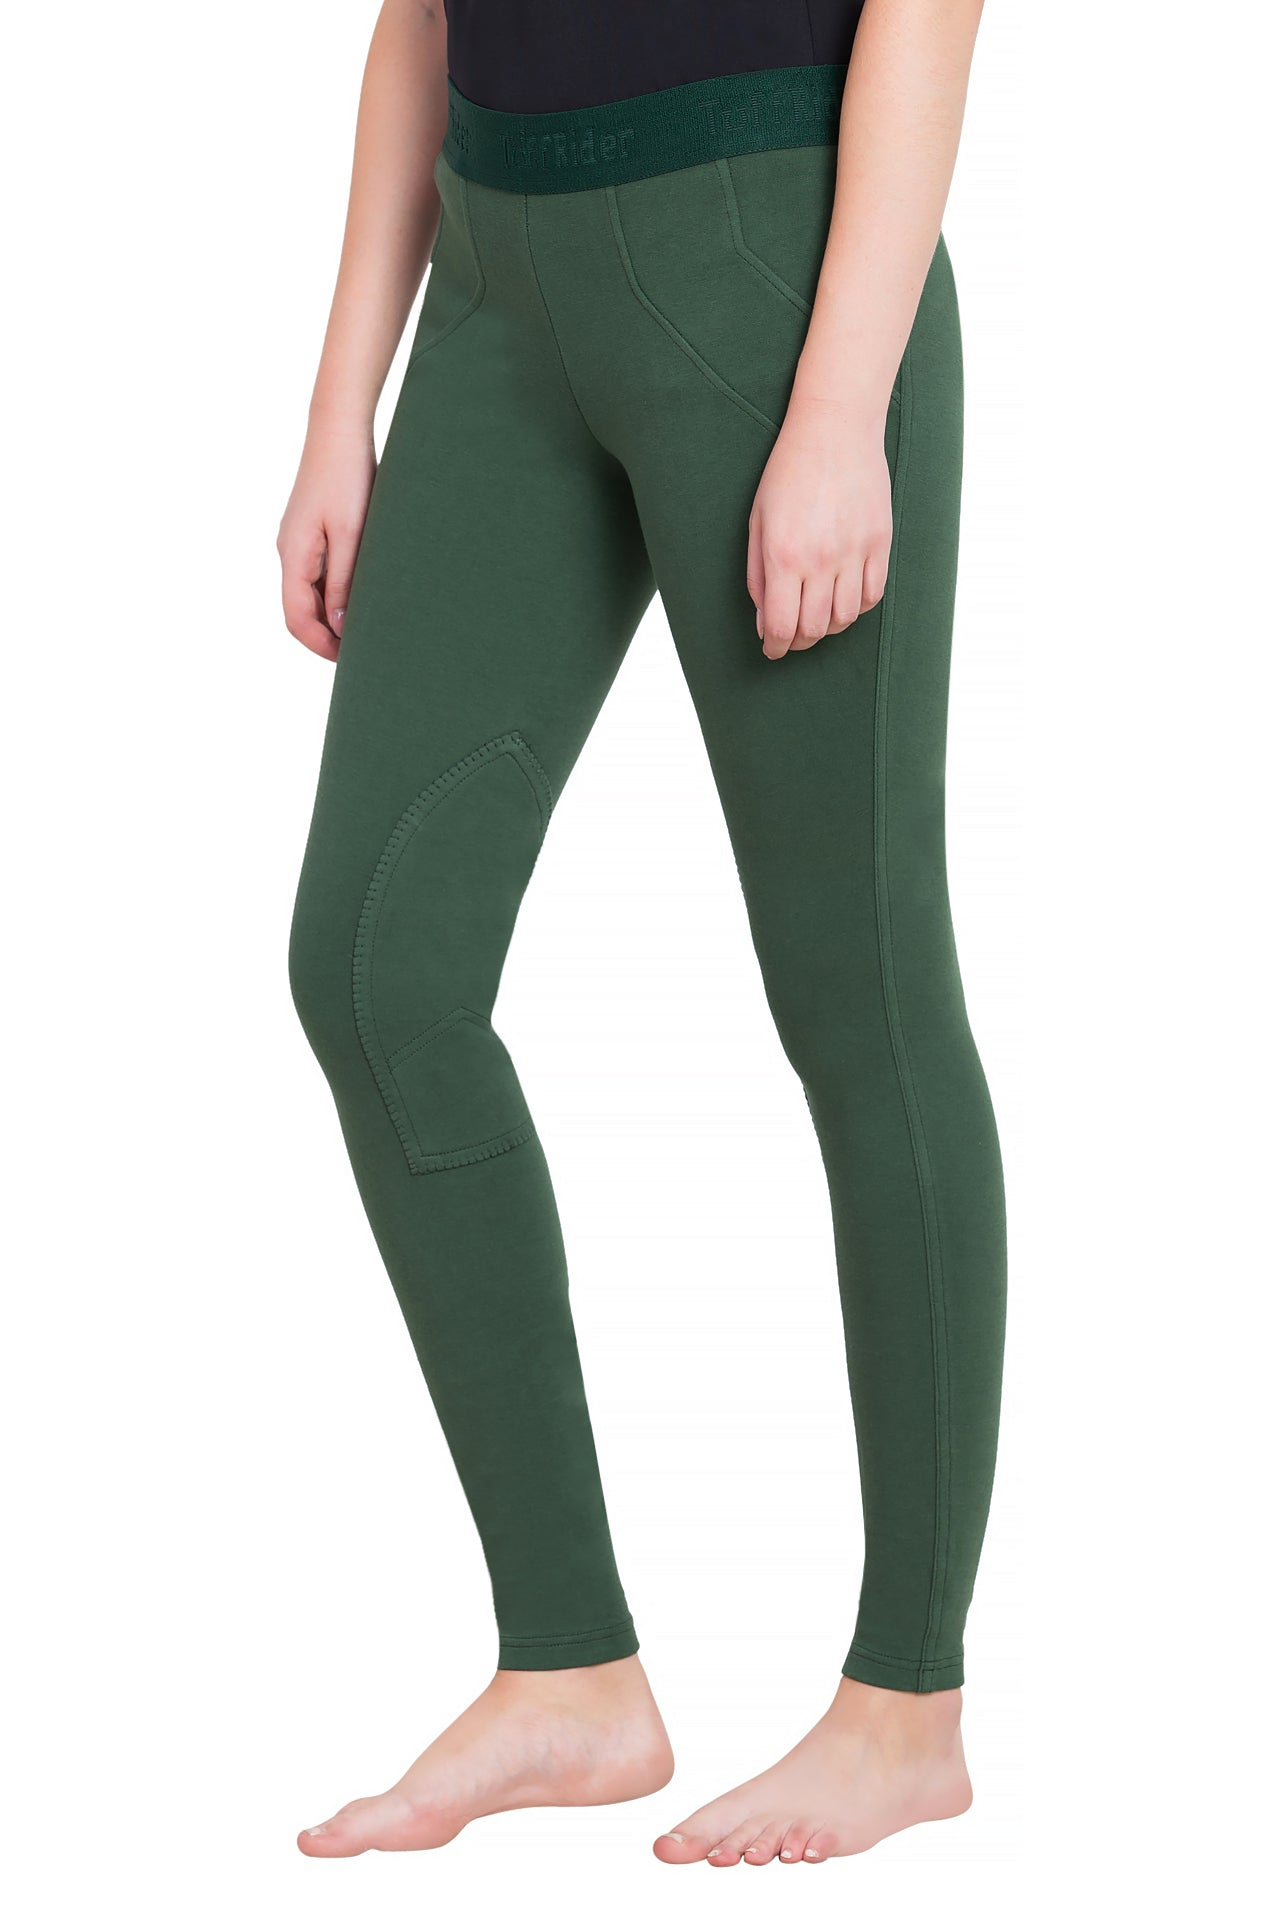 TuffRider Ladies Cotton Schoolers Riding Tights - TuffRider - Breeches.com